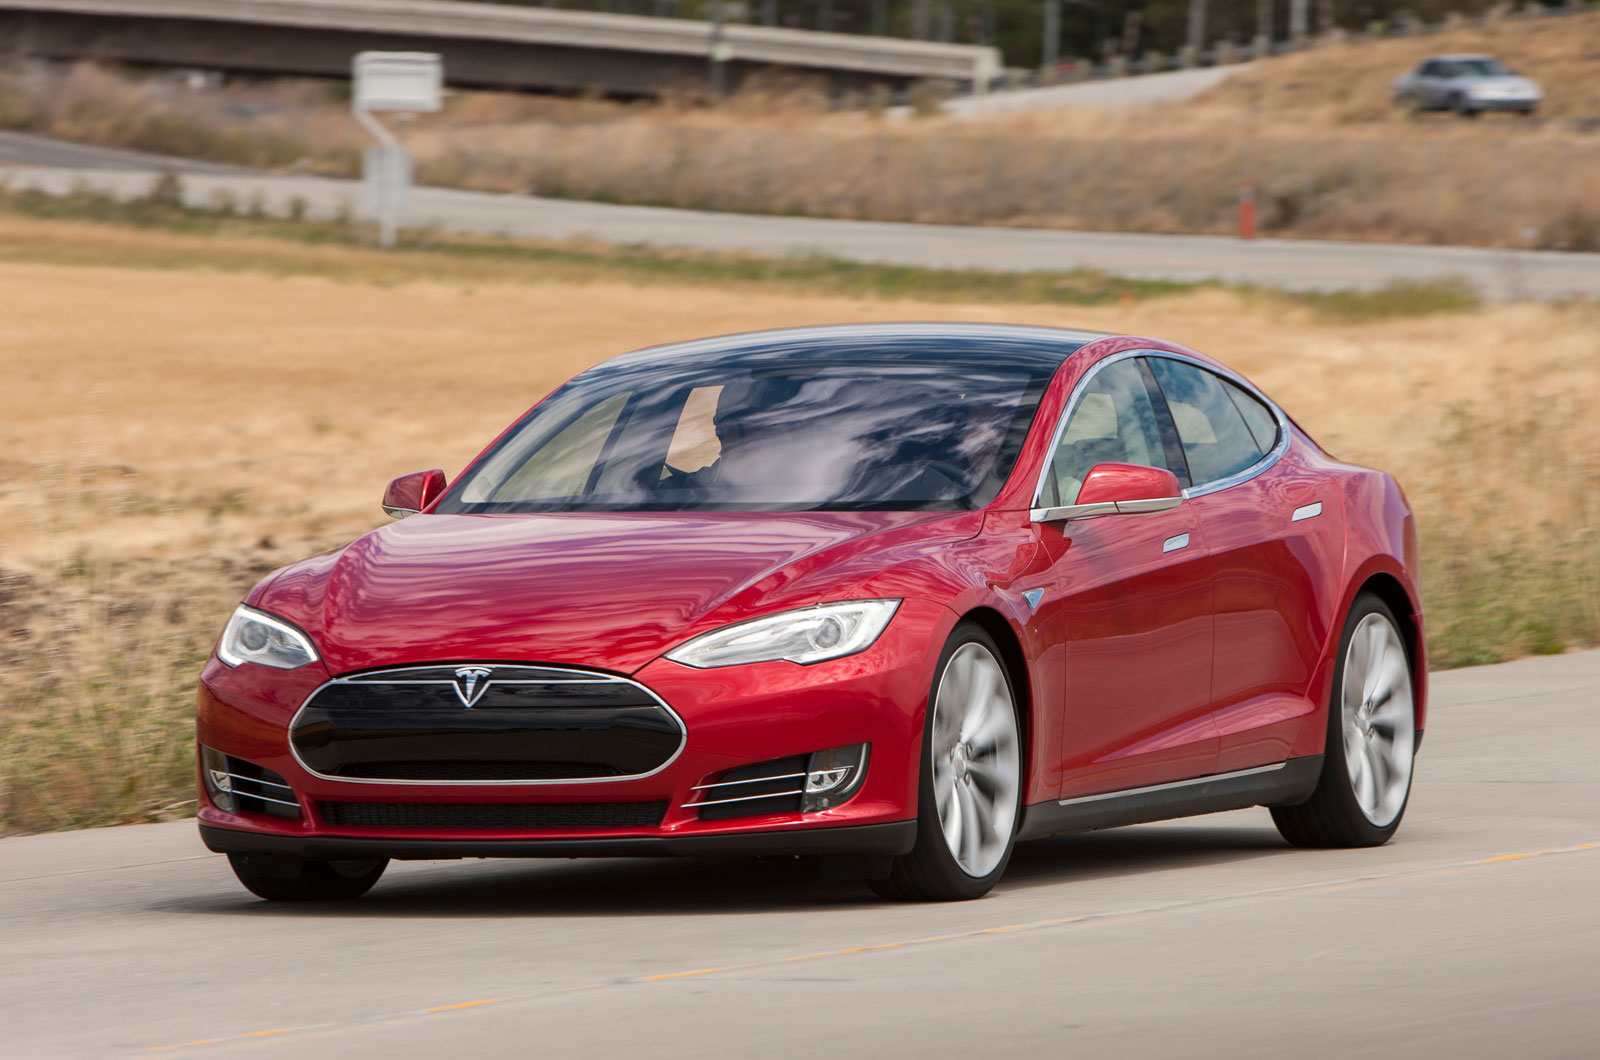 tesla s electric 3 series rival on sale in 2015 autocar. Black Bedroom Furniture Sets. Home Design Ideas